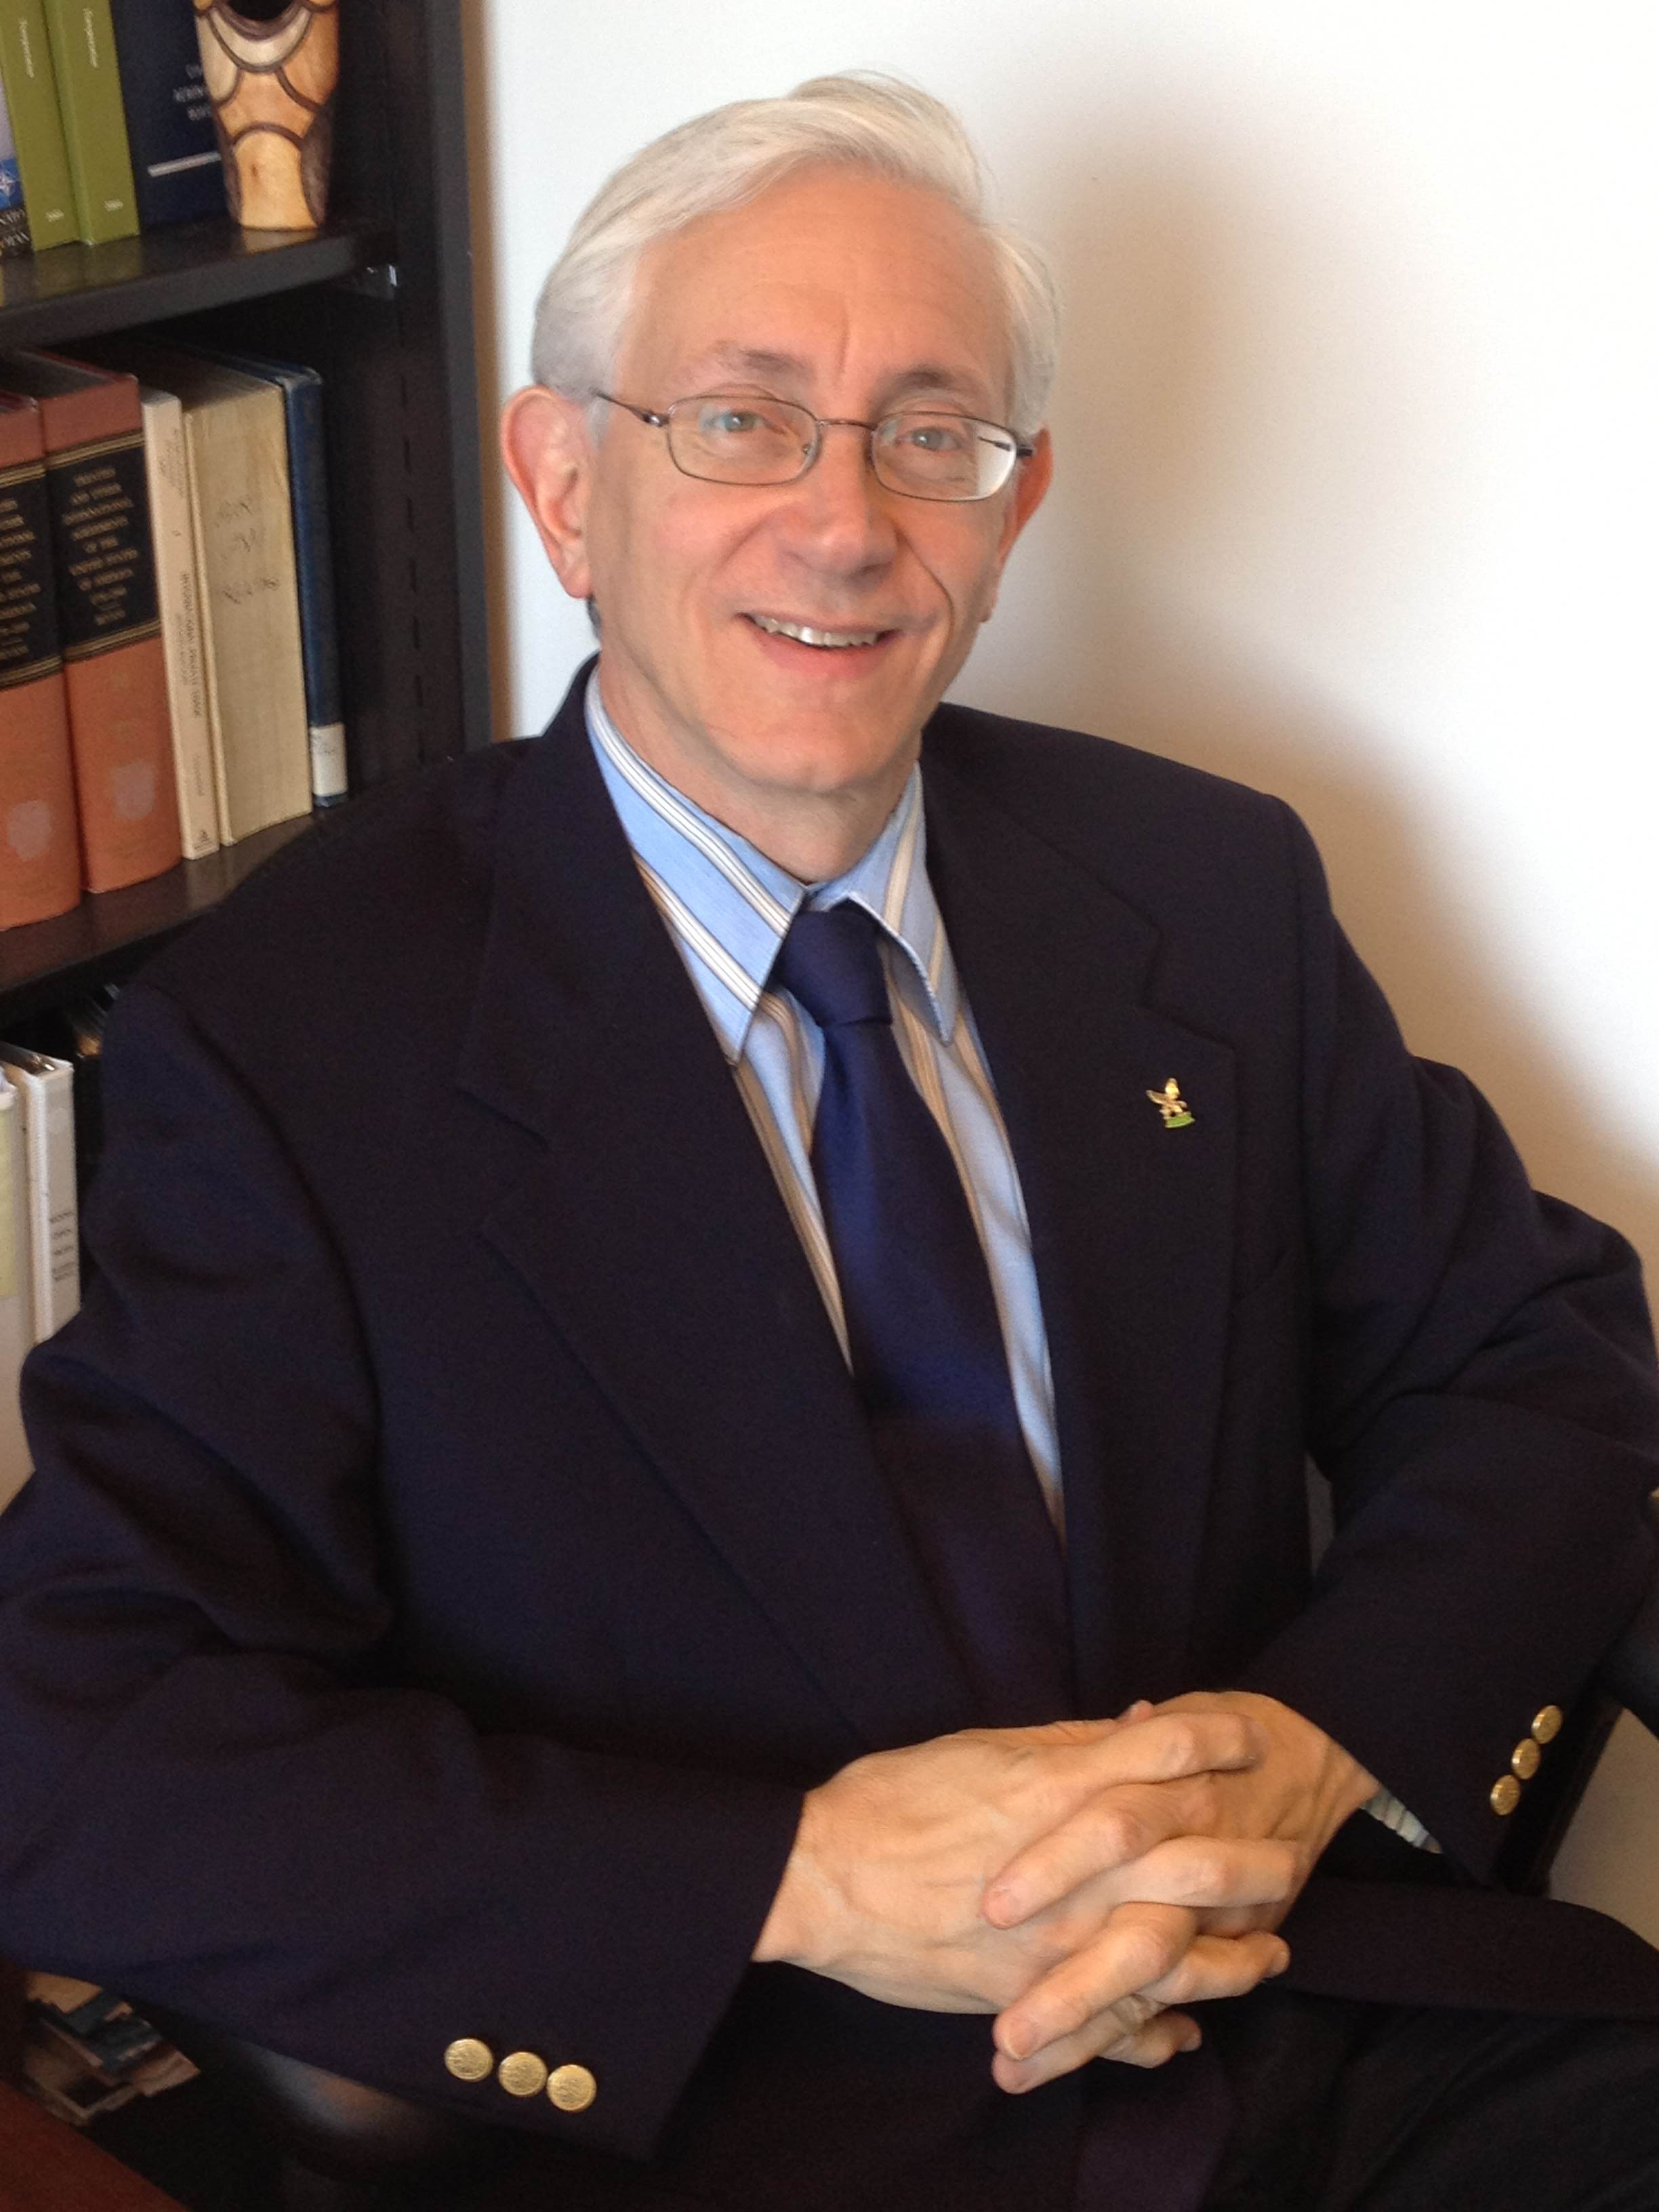 Photo of Peter Bloch, Deputy Assistant General Counsel for International Law